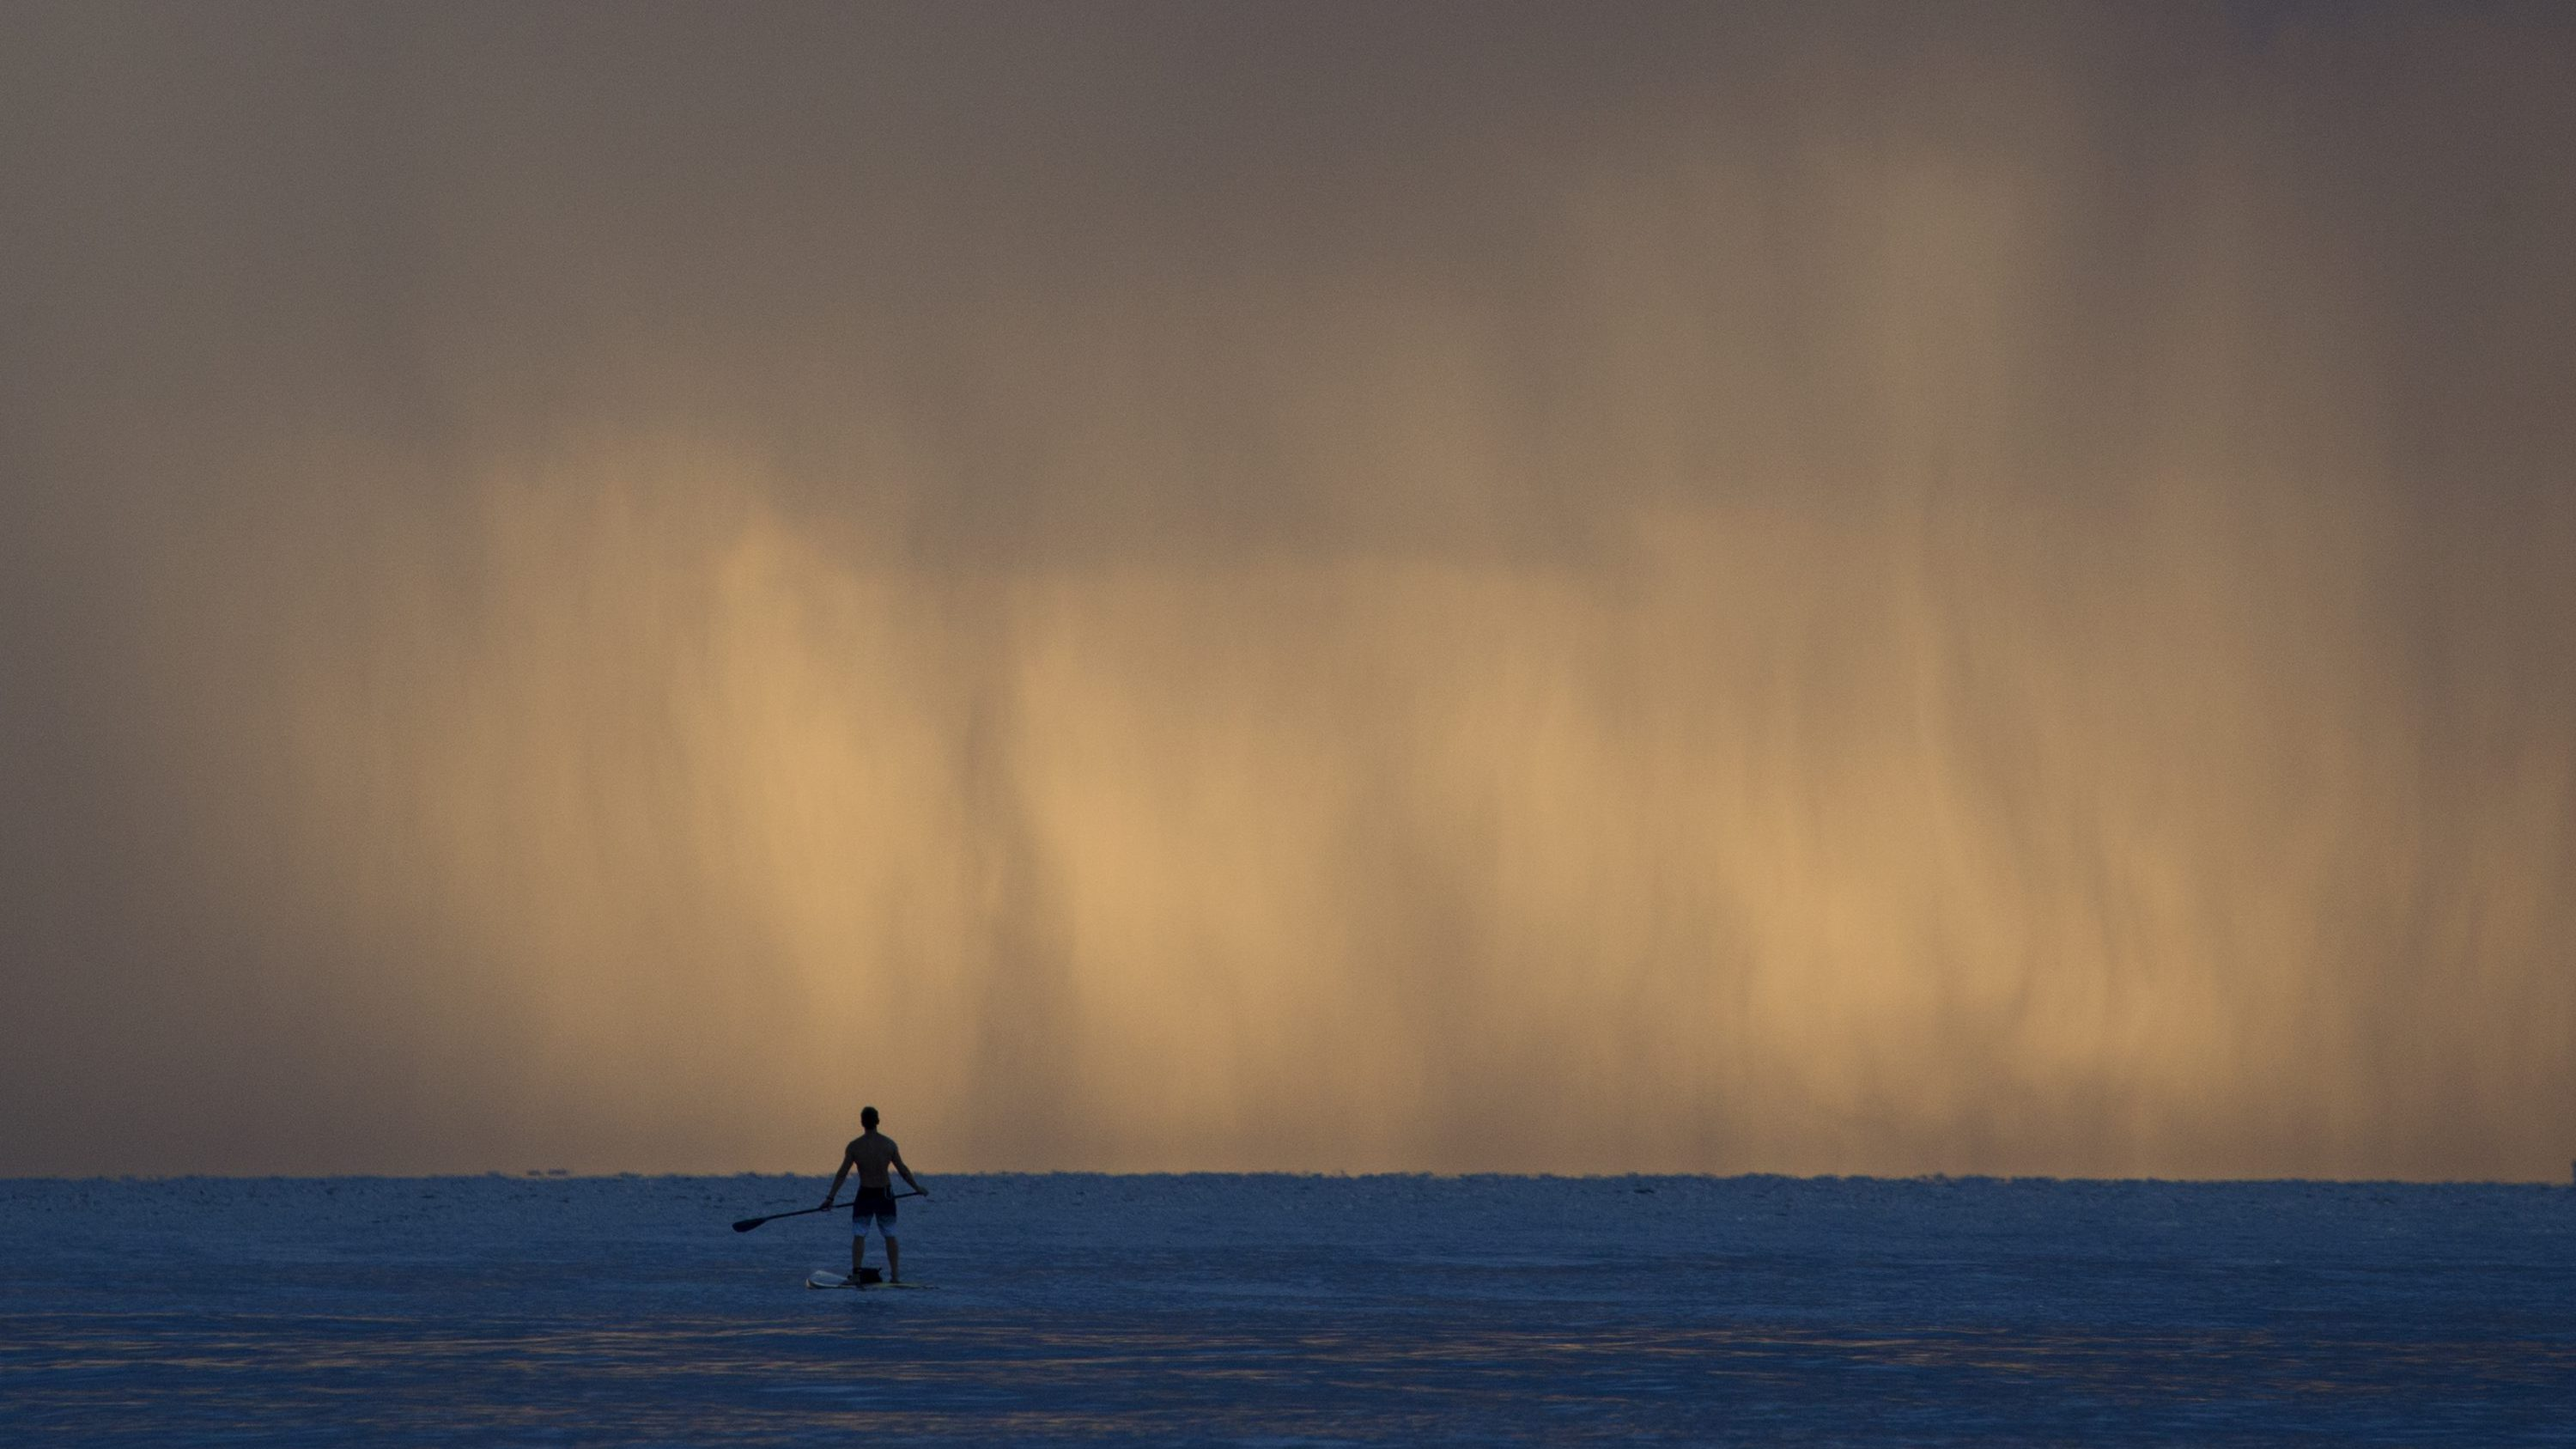 AP10ThingsToSee - Pablo Dona, of Miami pauses while paddleboarding as sheets of rain fall in front of him off the shores of Bal Harbour, Fla., on Tuesday, Sept. 22, 2015.